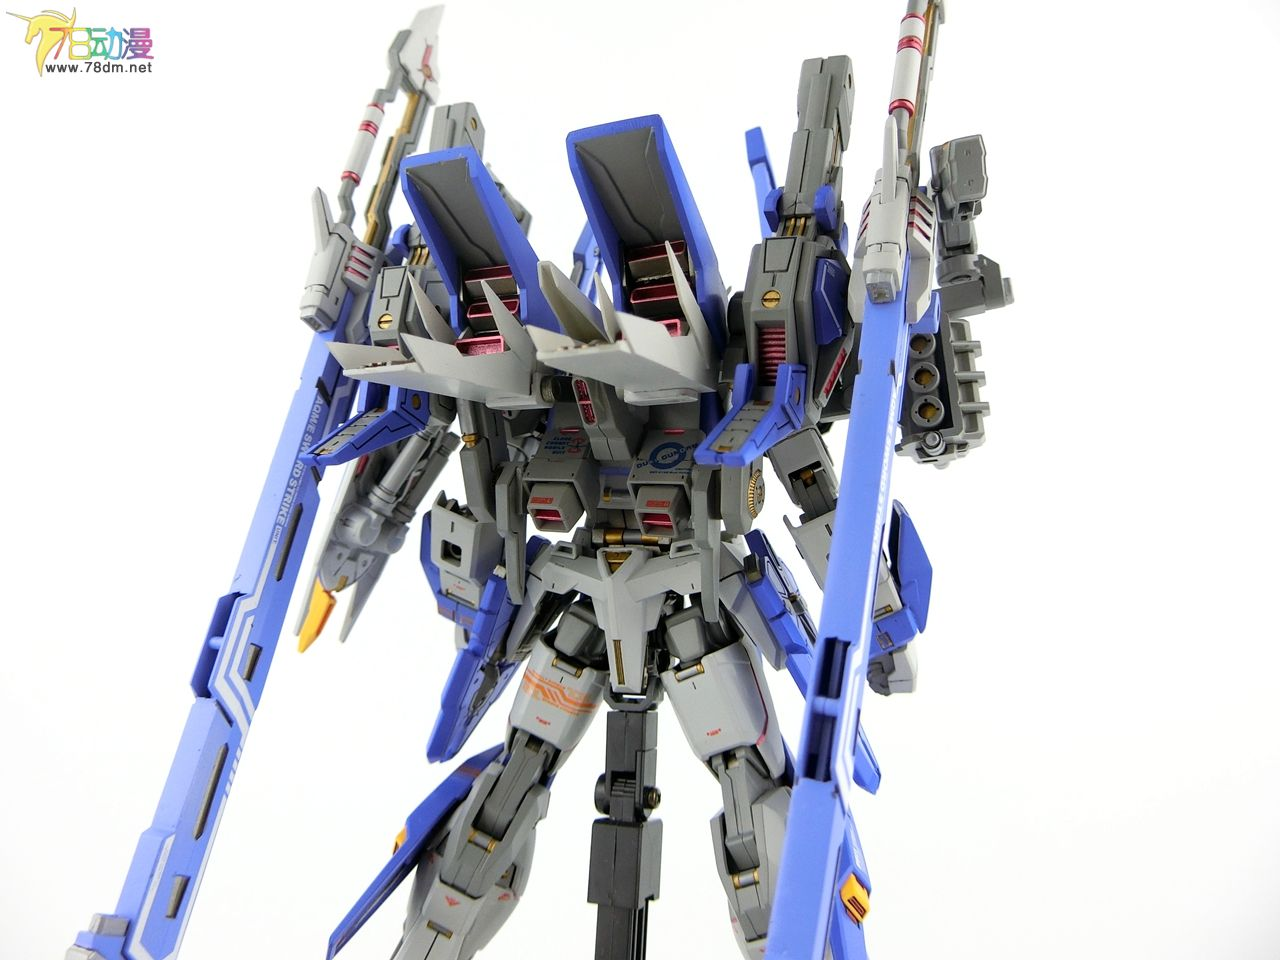 Custom Build: MG 1/100 Lawave Duel Gundam [Tsunami Duel]